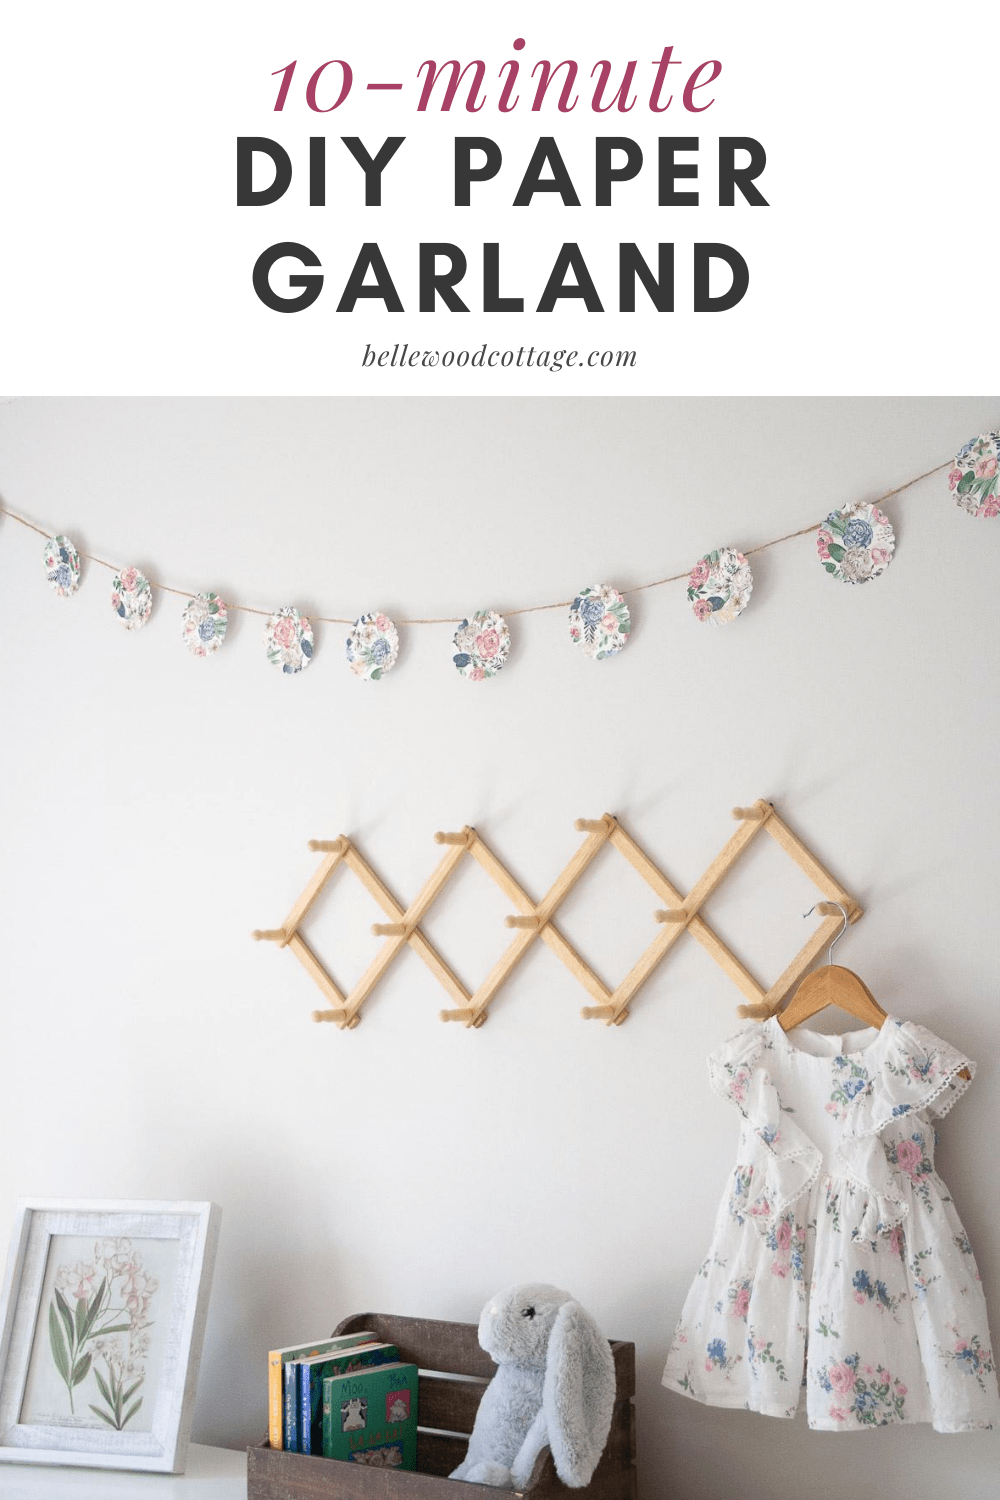 A diy paper garland hanging on the wall above other home decor like books and a peg rack.